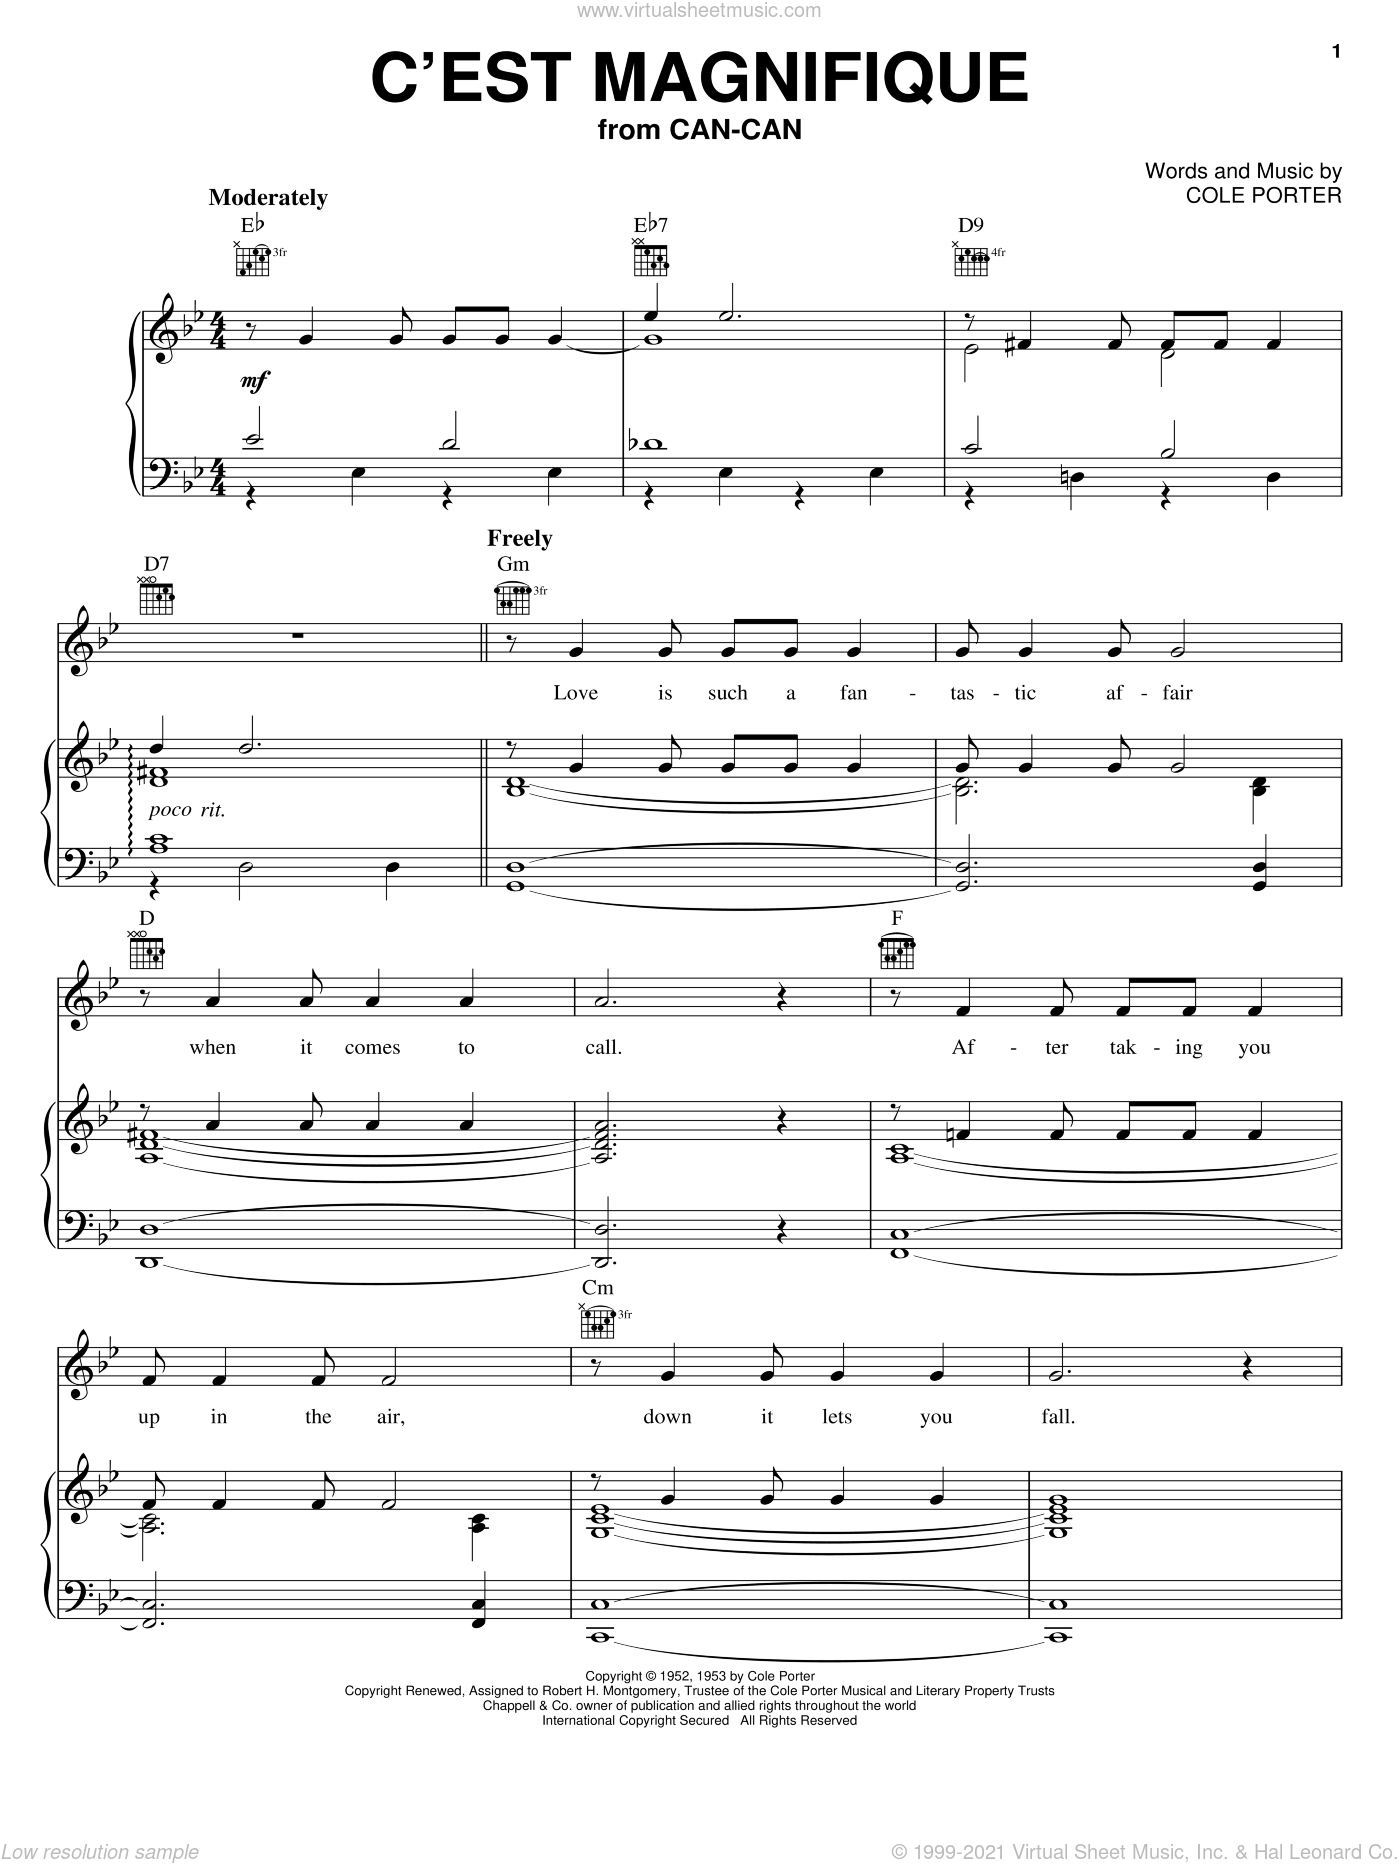 C'est Magnifique sheet music for voice, piano or guitar by Cole Porter, intermediate skill level